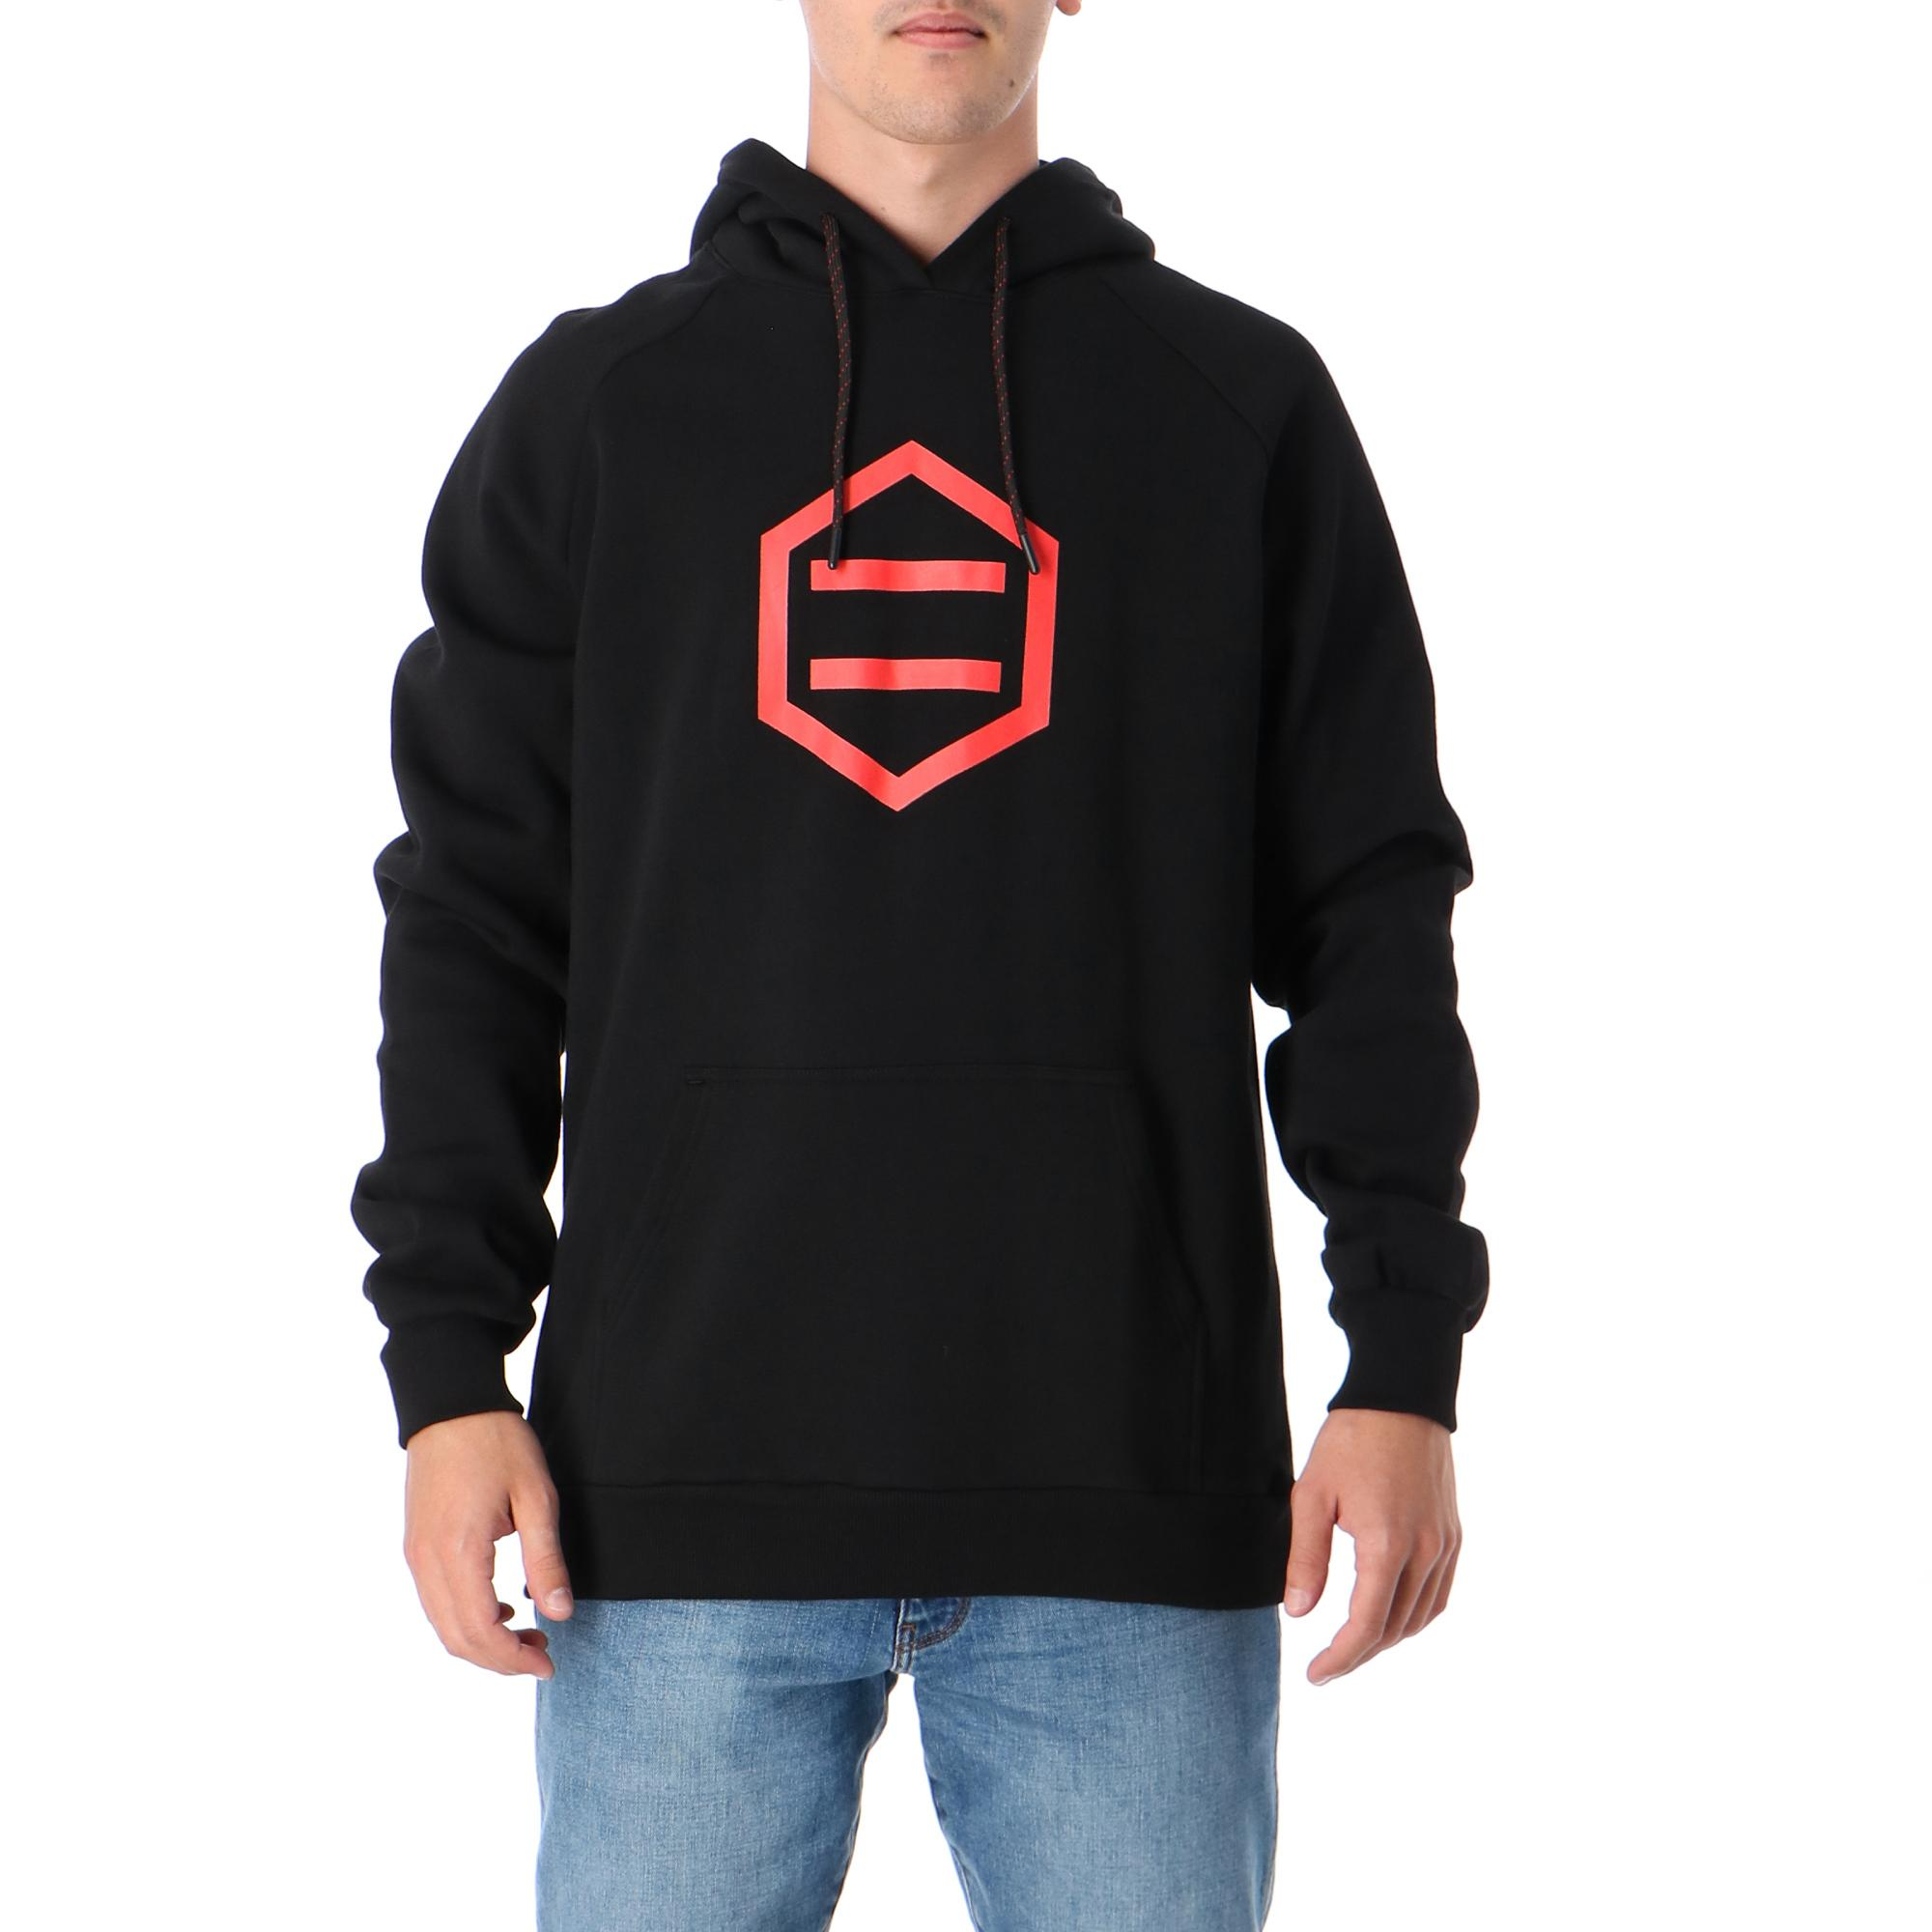 Dolly Noire Hexagon Black & Red Hoodie Black